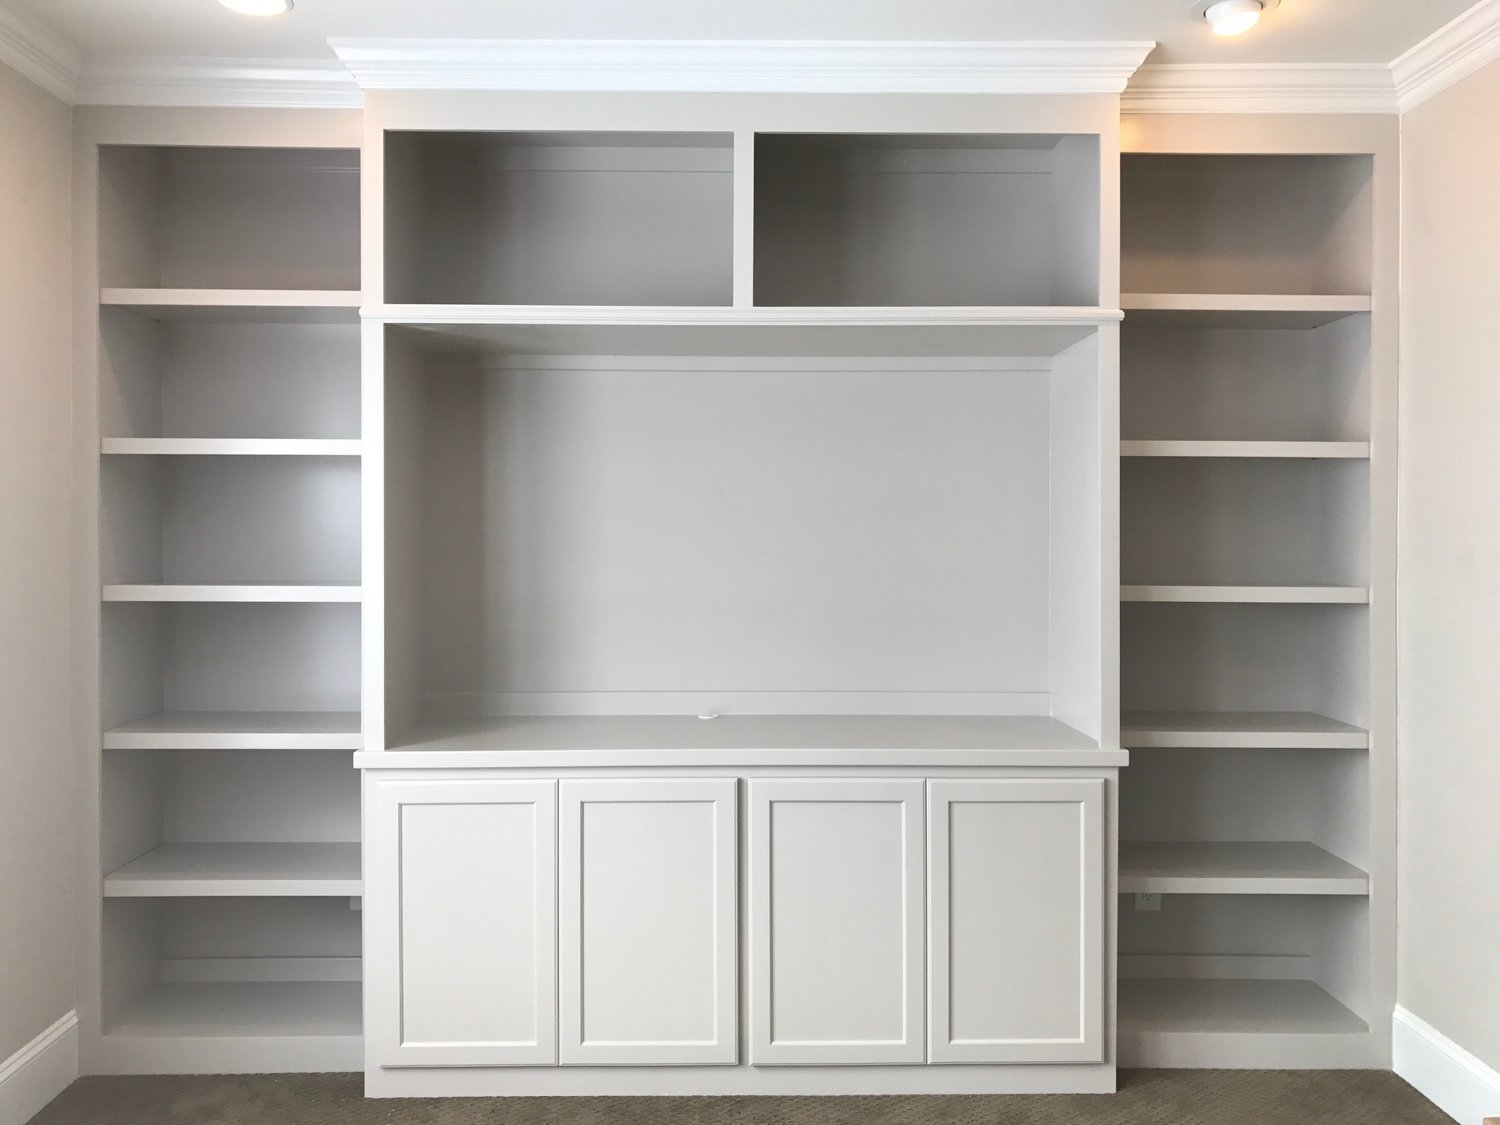 Built-In with Fixed Shelves, TV Opening, Crown, and Shaker Doors